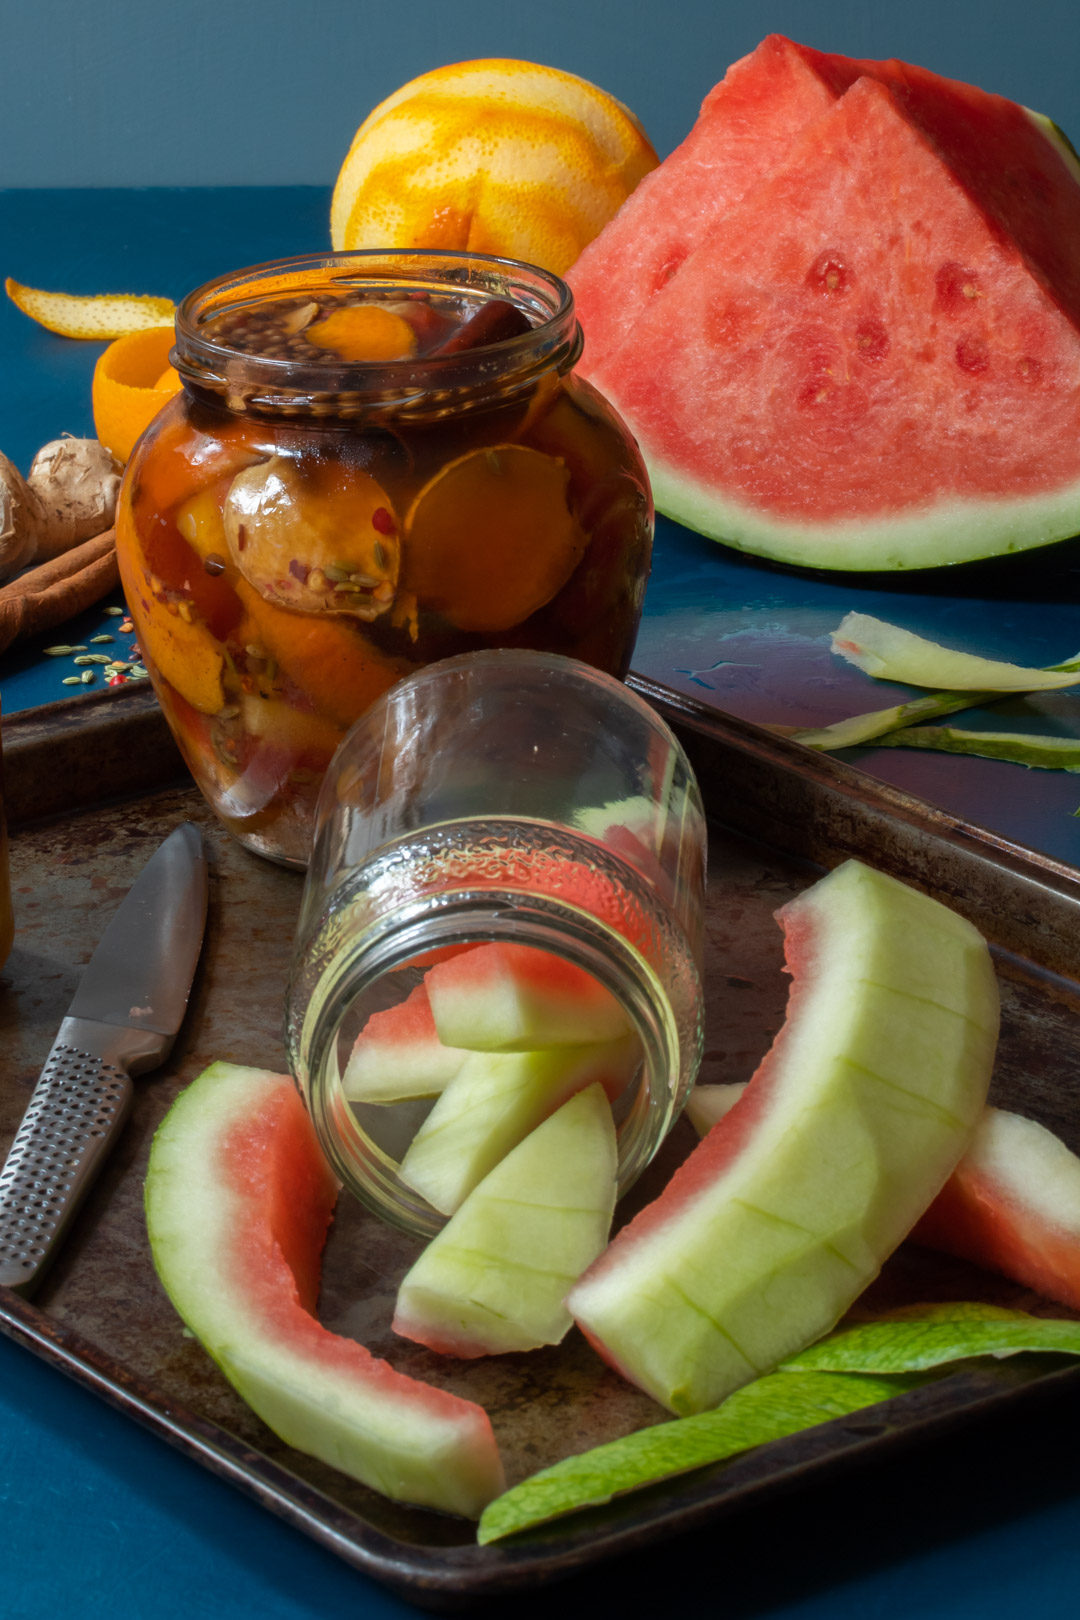 Quick watermelon rind pickle with cinnamon and chili: making pickles detailed view